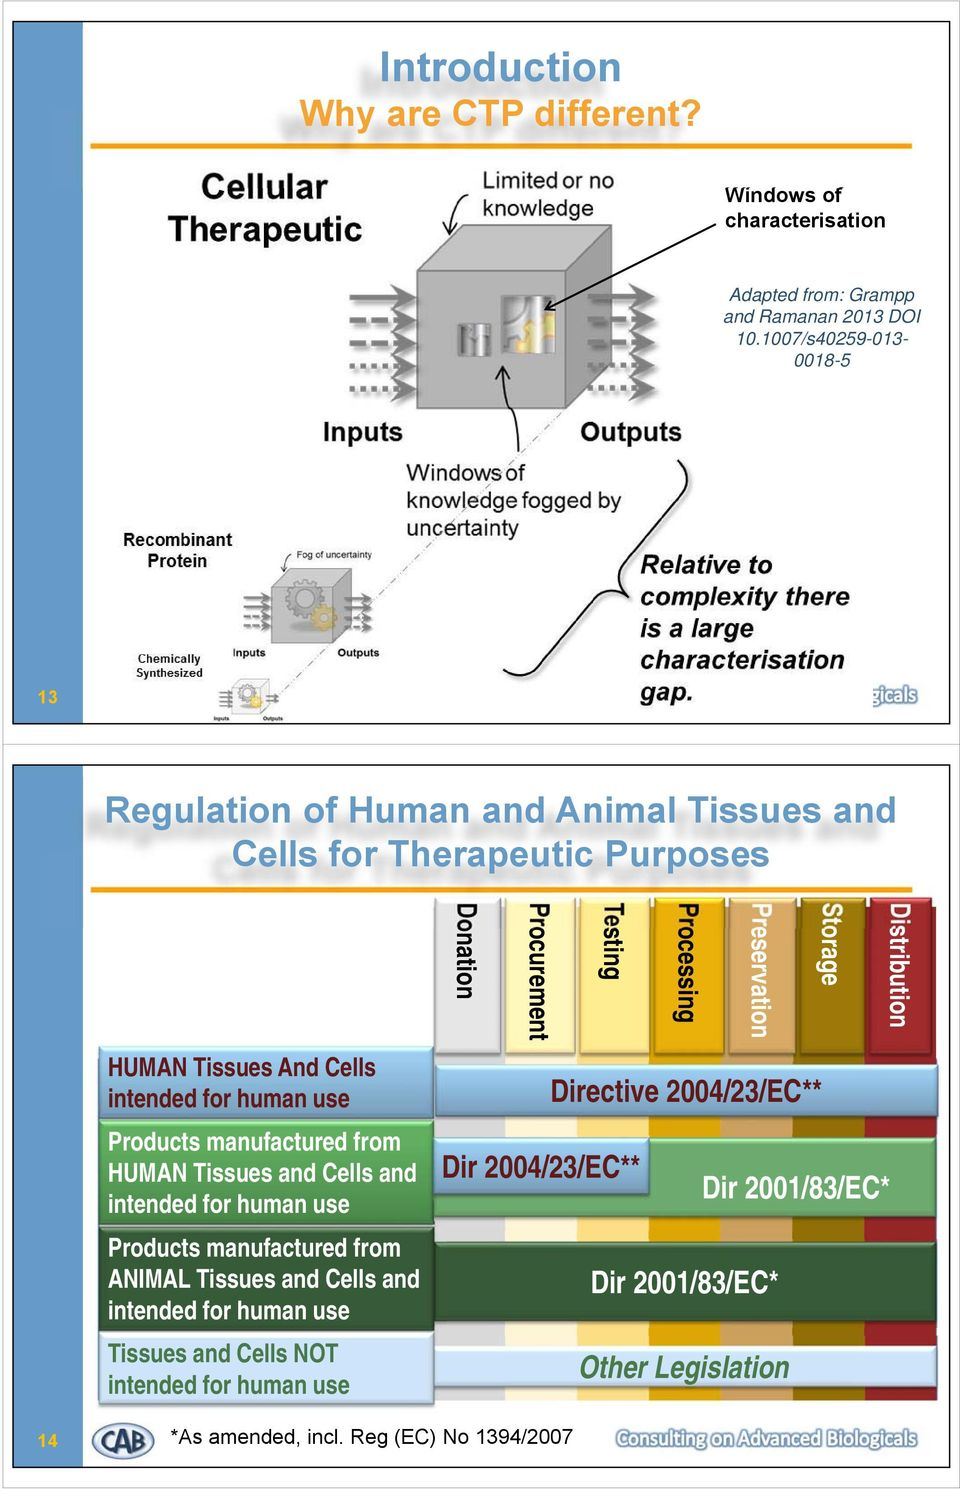 HUMAN Tissues and Cells and intended for human use Products manufactured from ANIMAL Tissues and Cells and intended for human use Tissues and Cells NOT intended for human use